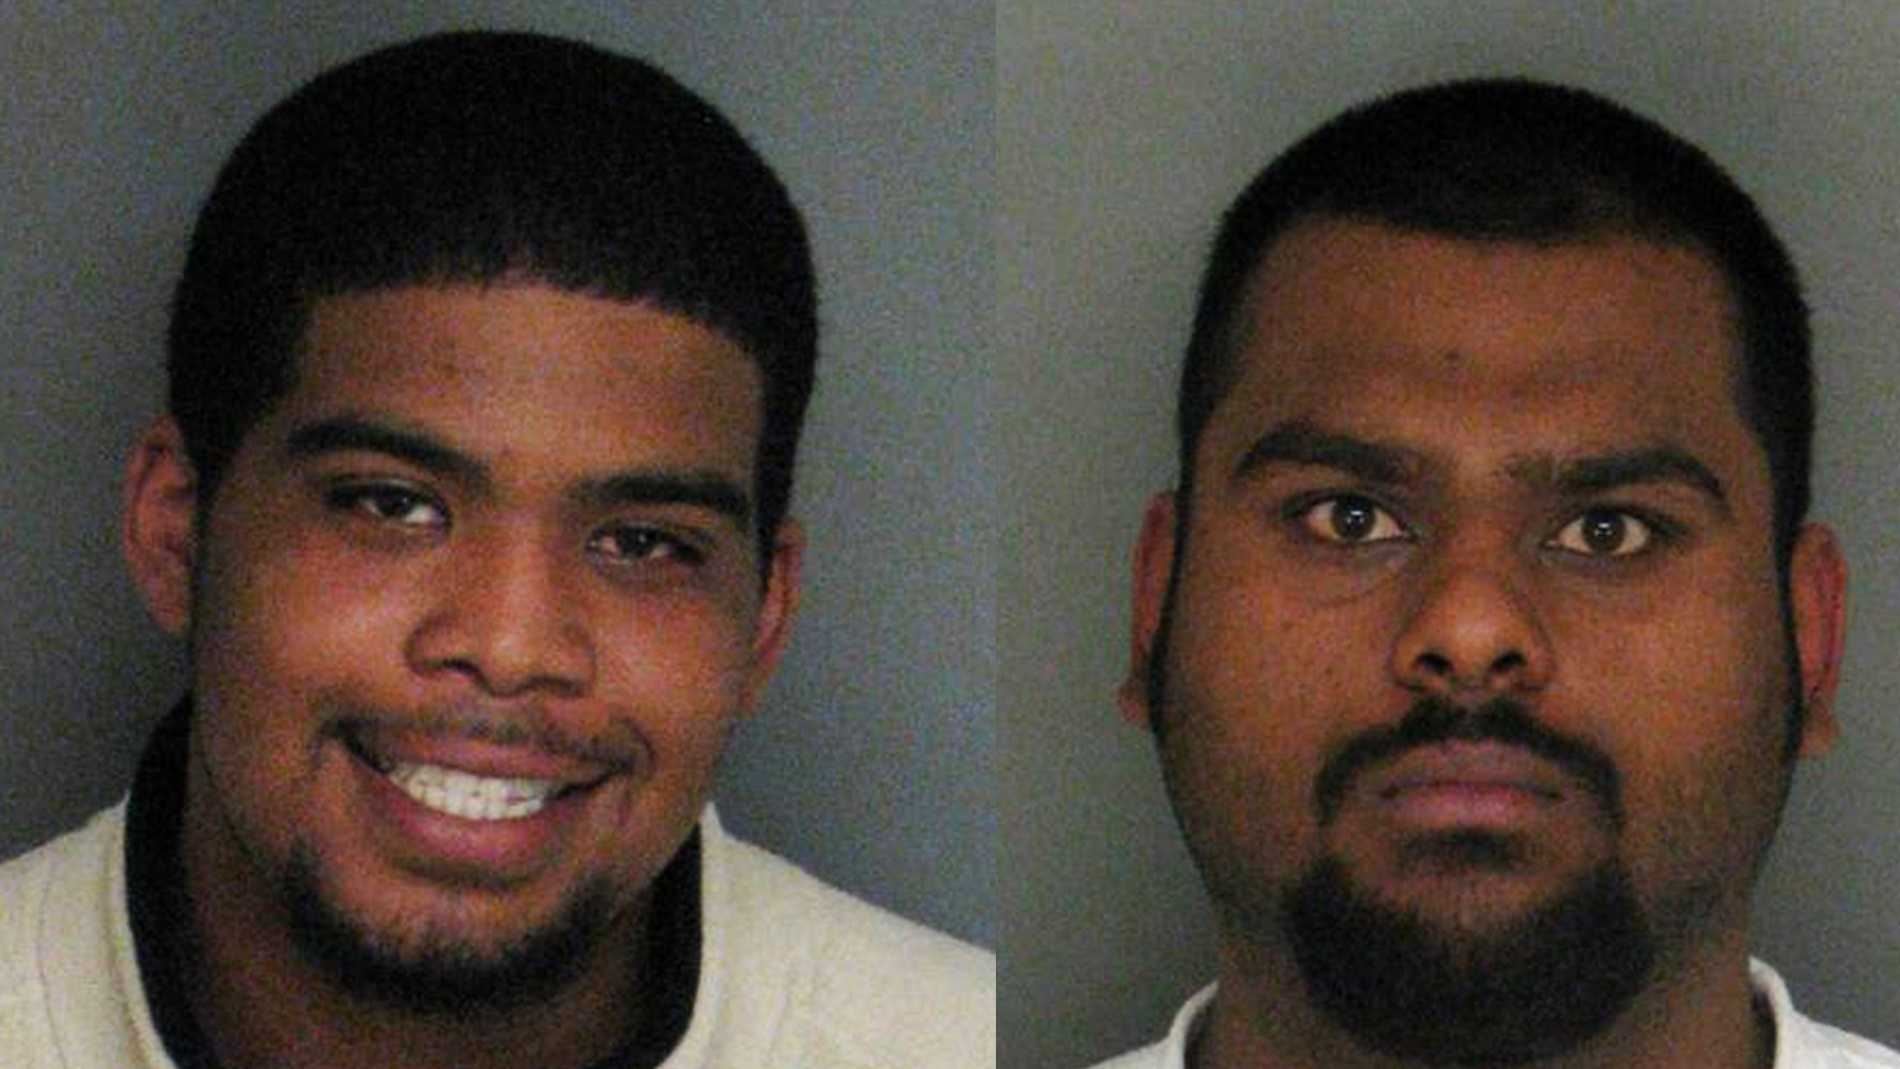 Jordan Killins, left, and Richard Singh, right, are seen in mug shots.